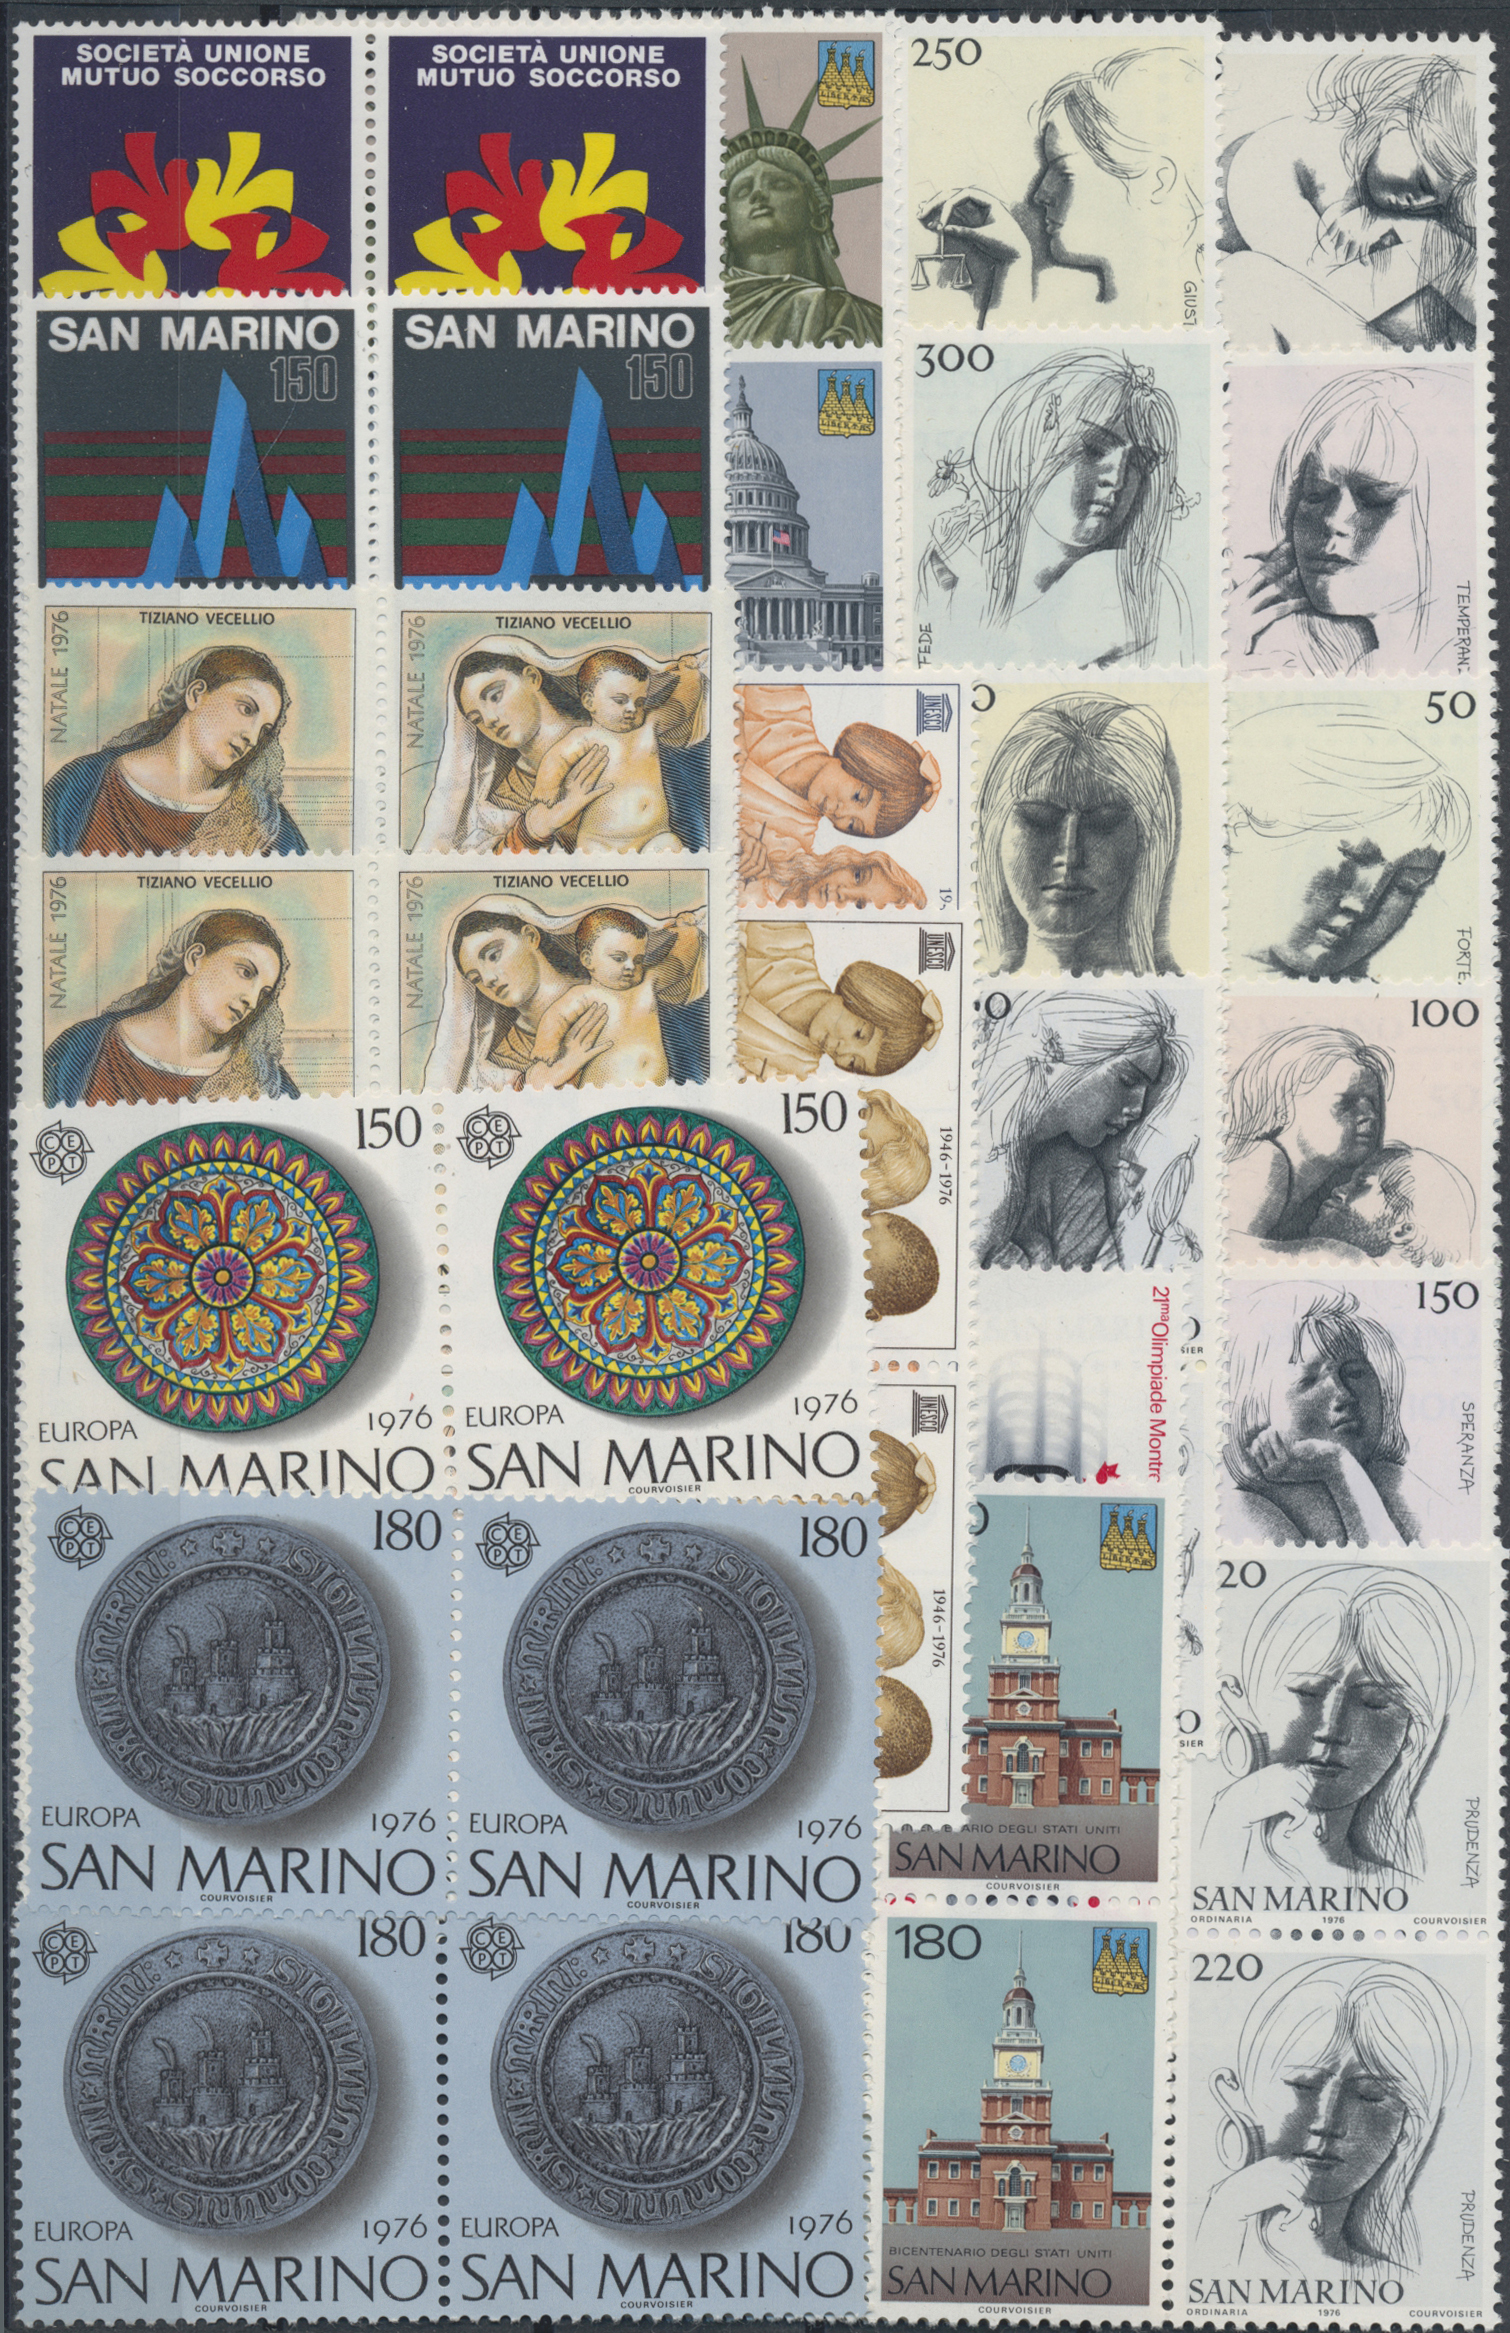 Lot 35035 - San Marino  -  Auktionshaus Christoph Gärtner GmbH & Co. KG Sale #44 Collections Germany